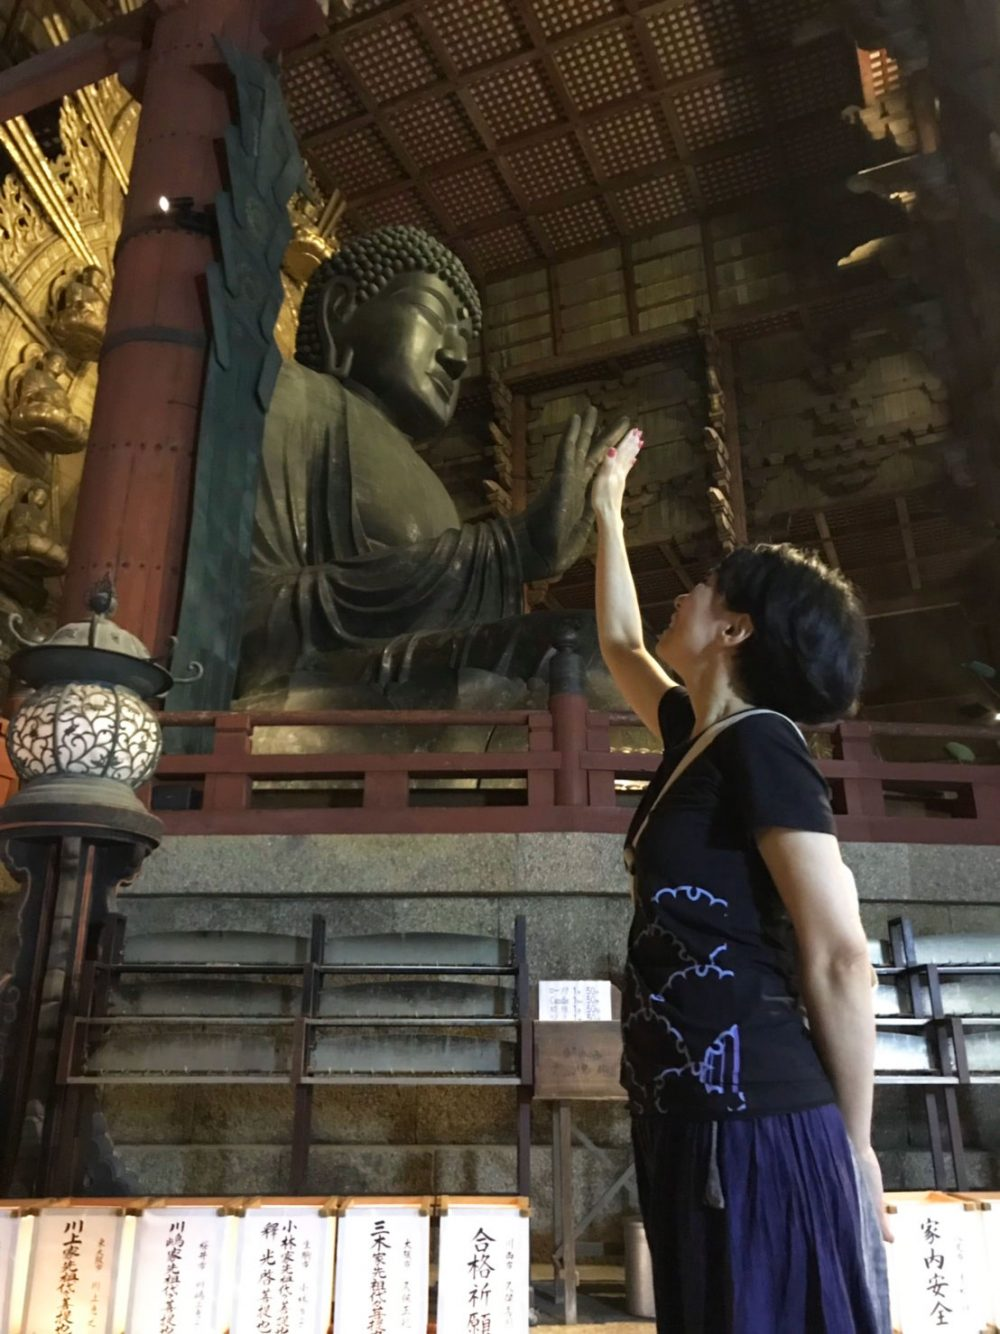 Child visiting Todaiji Temple, one of Japan's most important Buddhist temples